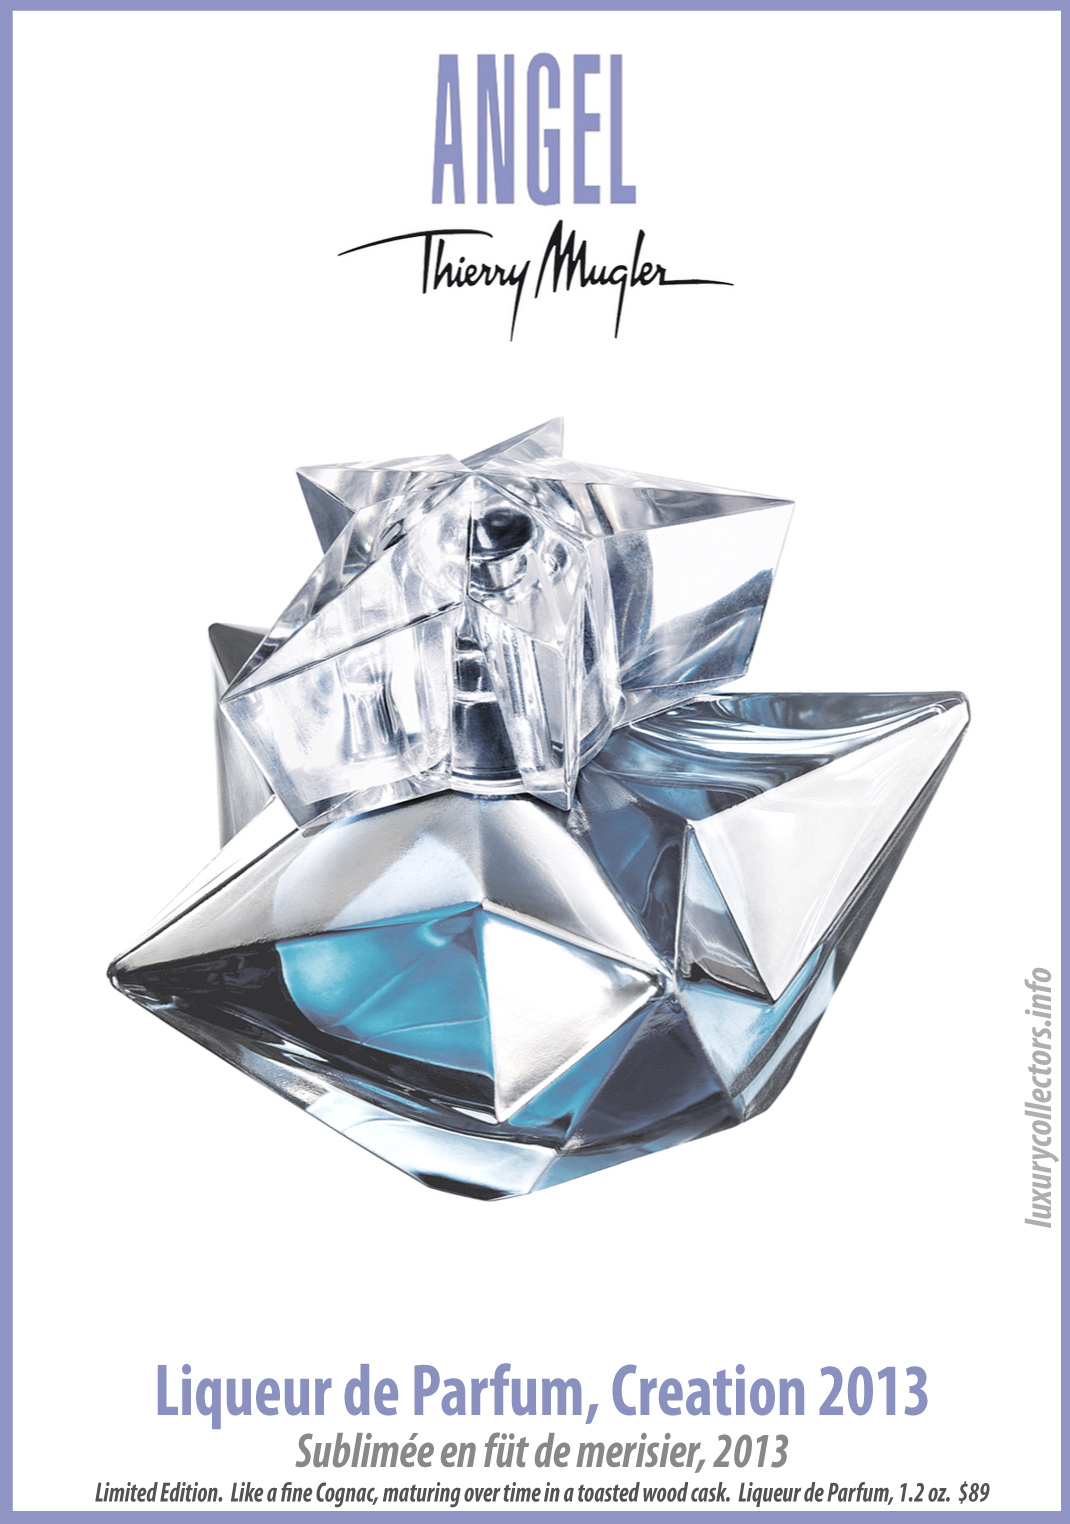 Thierry Mugler Angel Perfume Collector's Limited Edition Bottle Creation 2013 Liqueur de Parfum